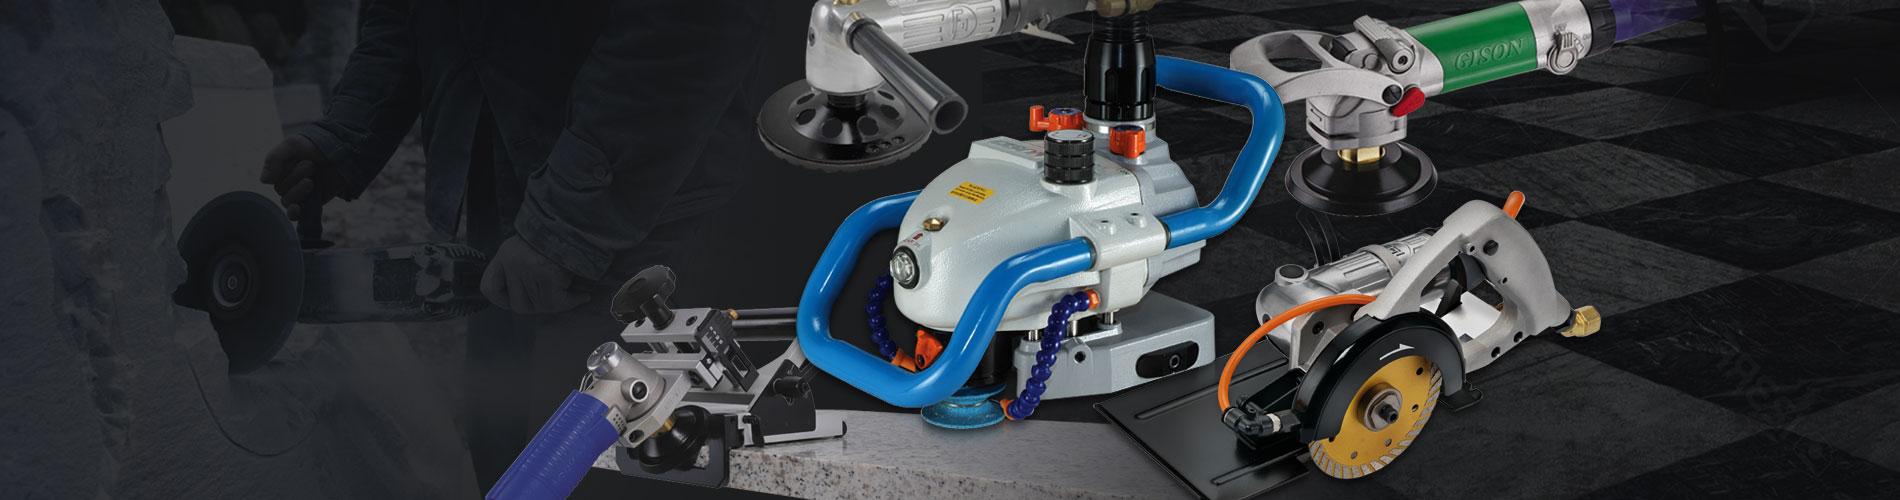 Wet Air Tools for Stone / Granite / Marble